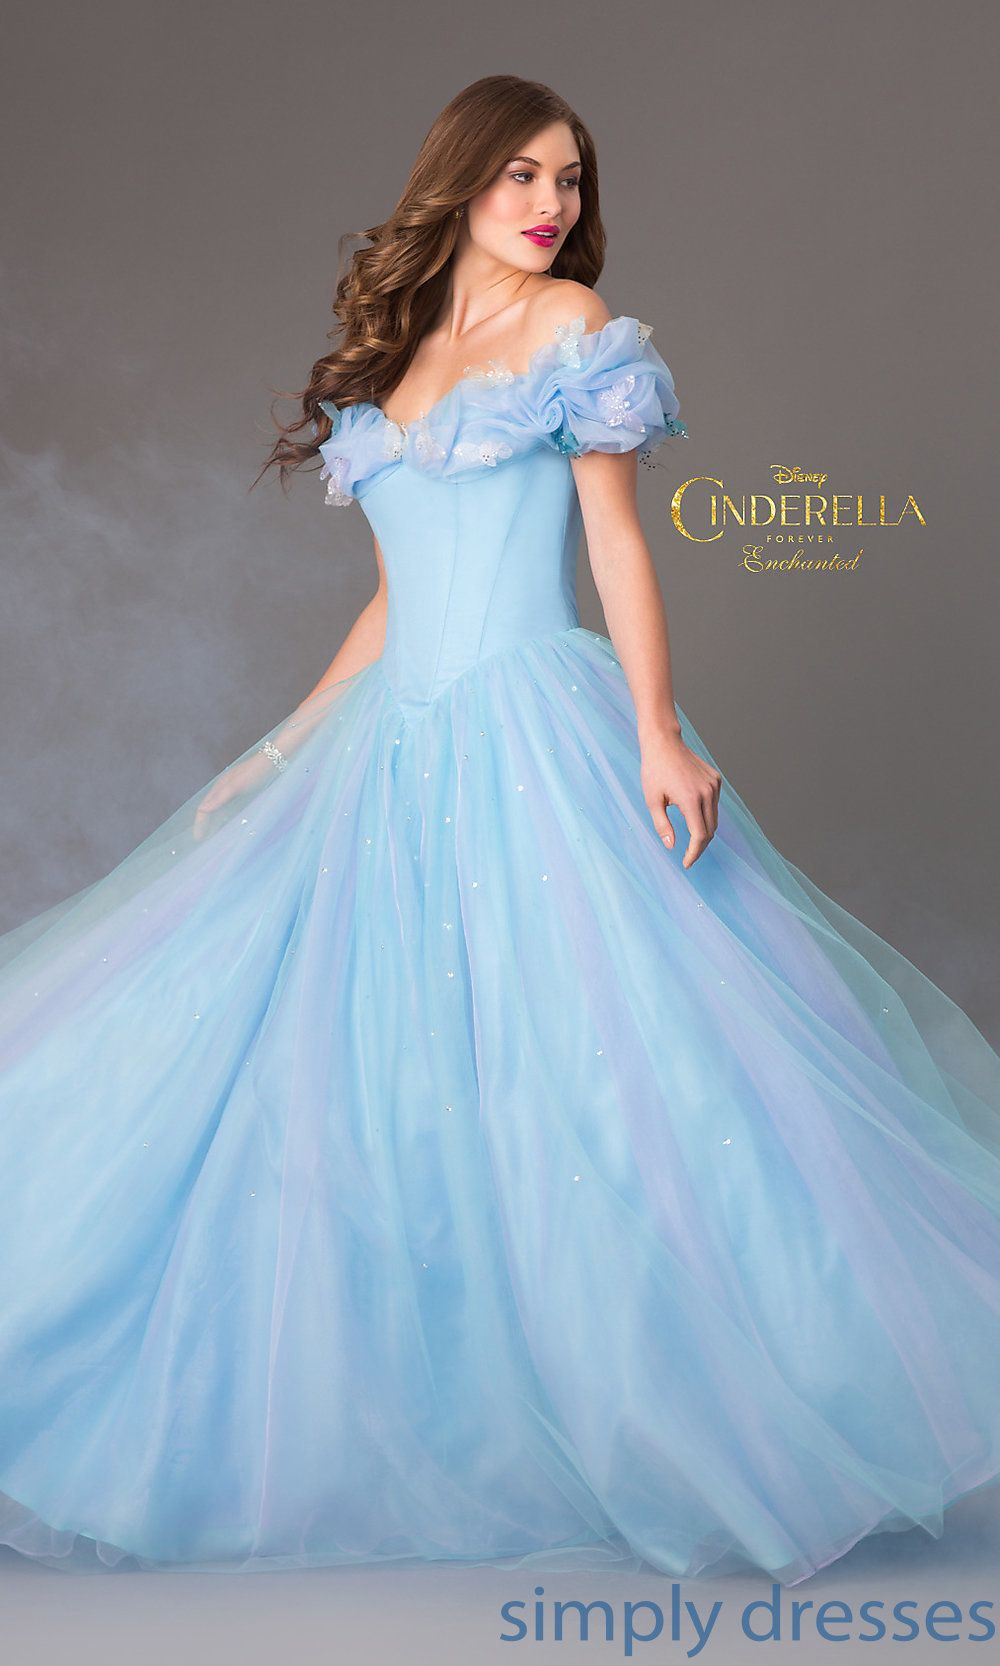 Shop SimplyDresses for blue ball gowns and Cinderella prom dresses